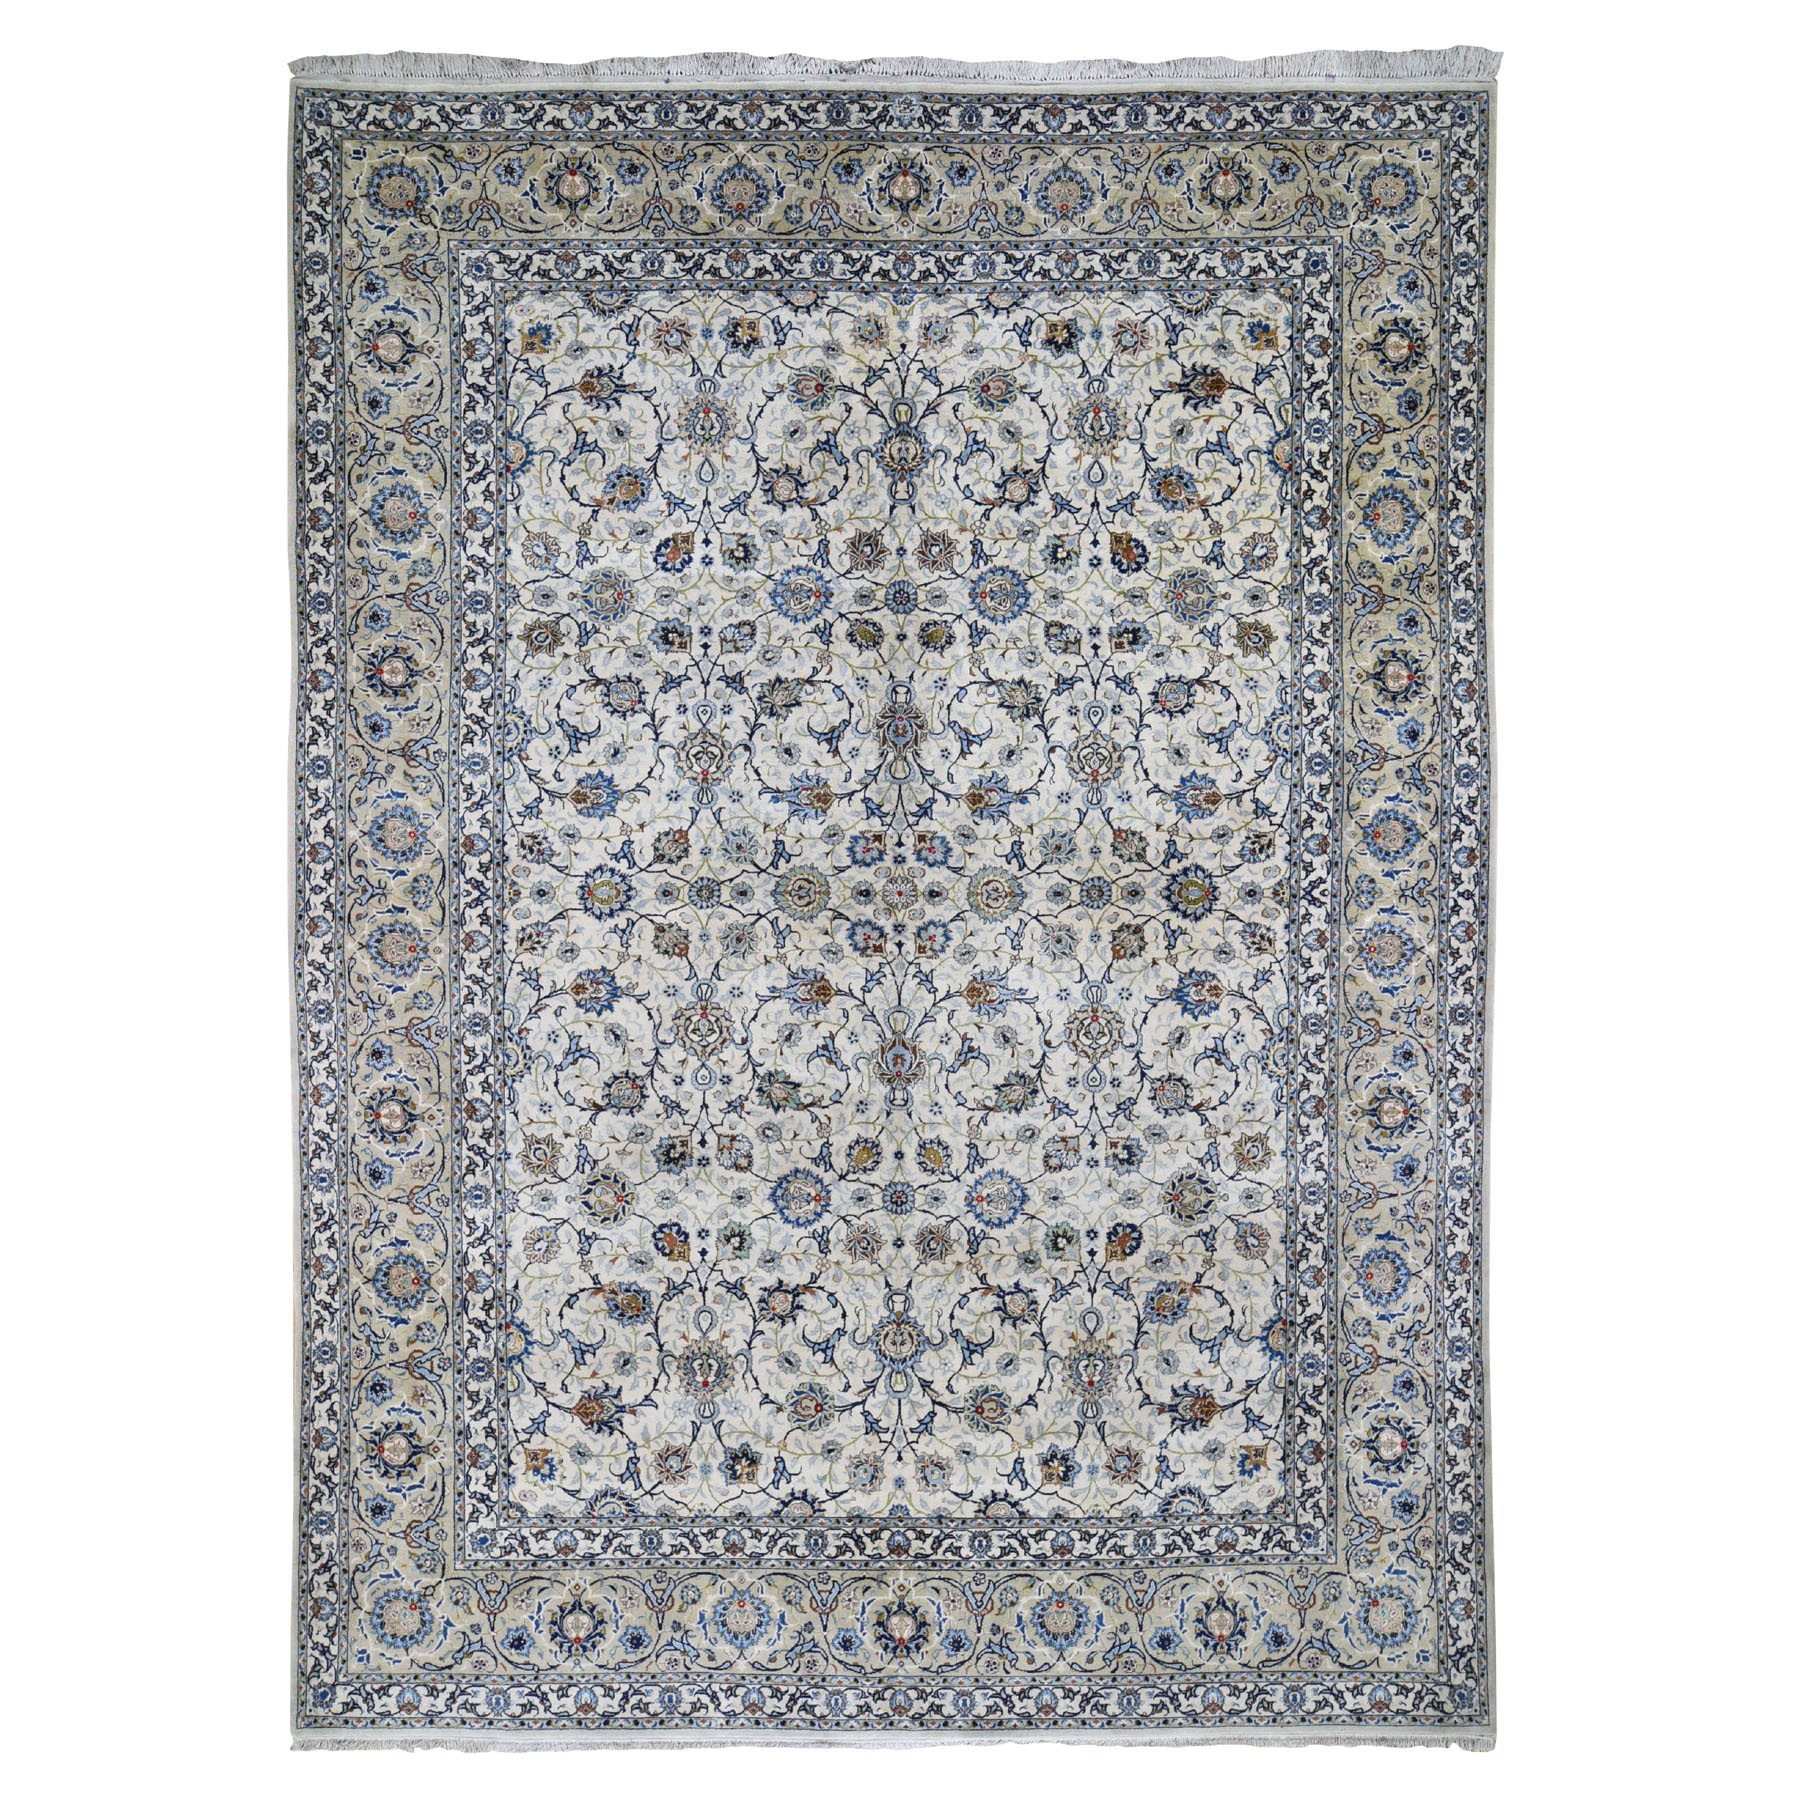 Antique Collection Hand Knotted Ivory Rug No: 0195978